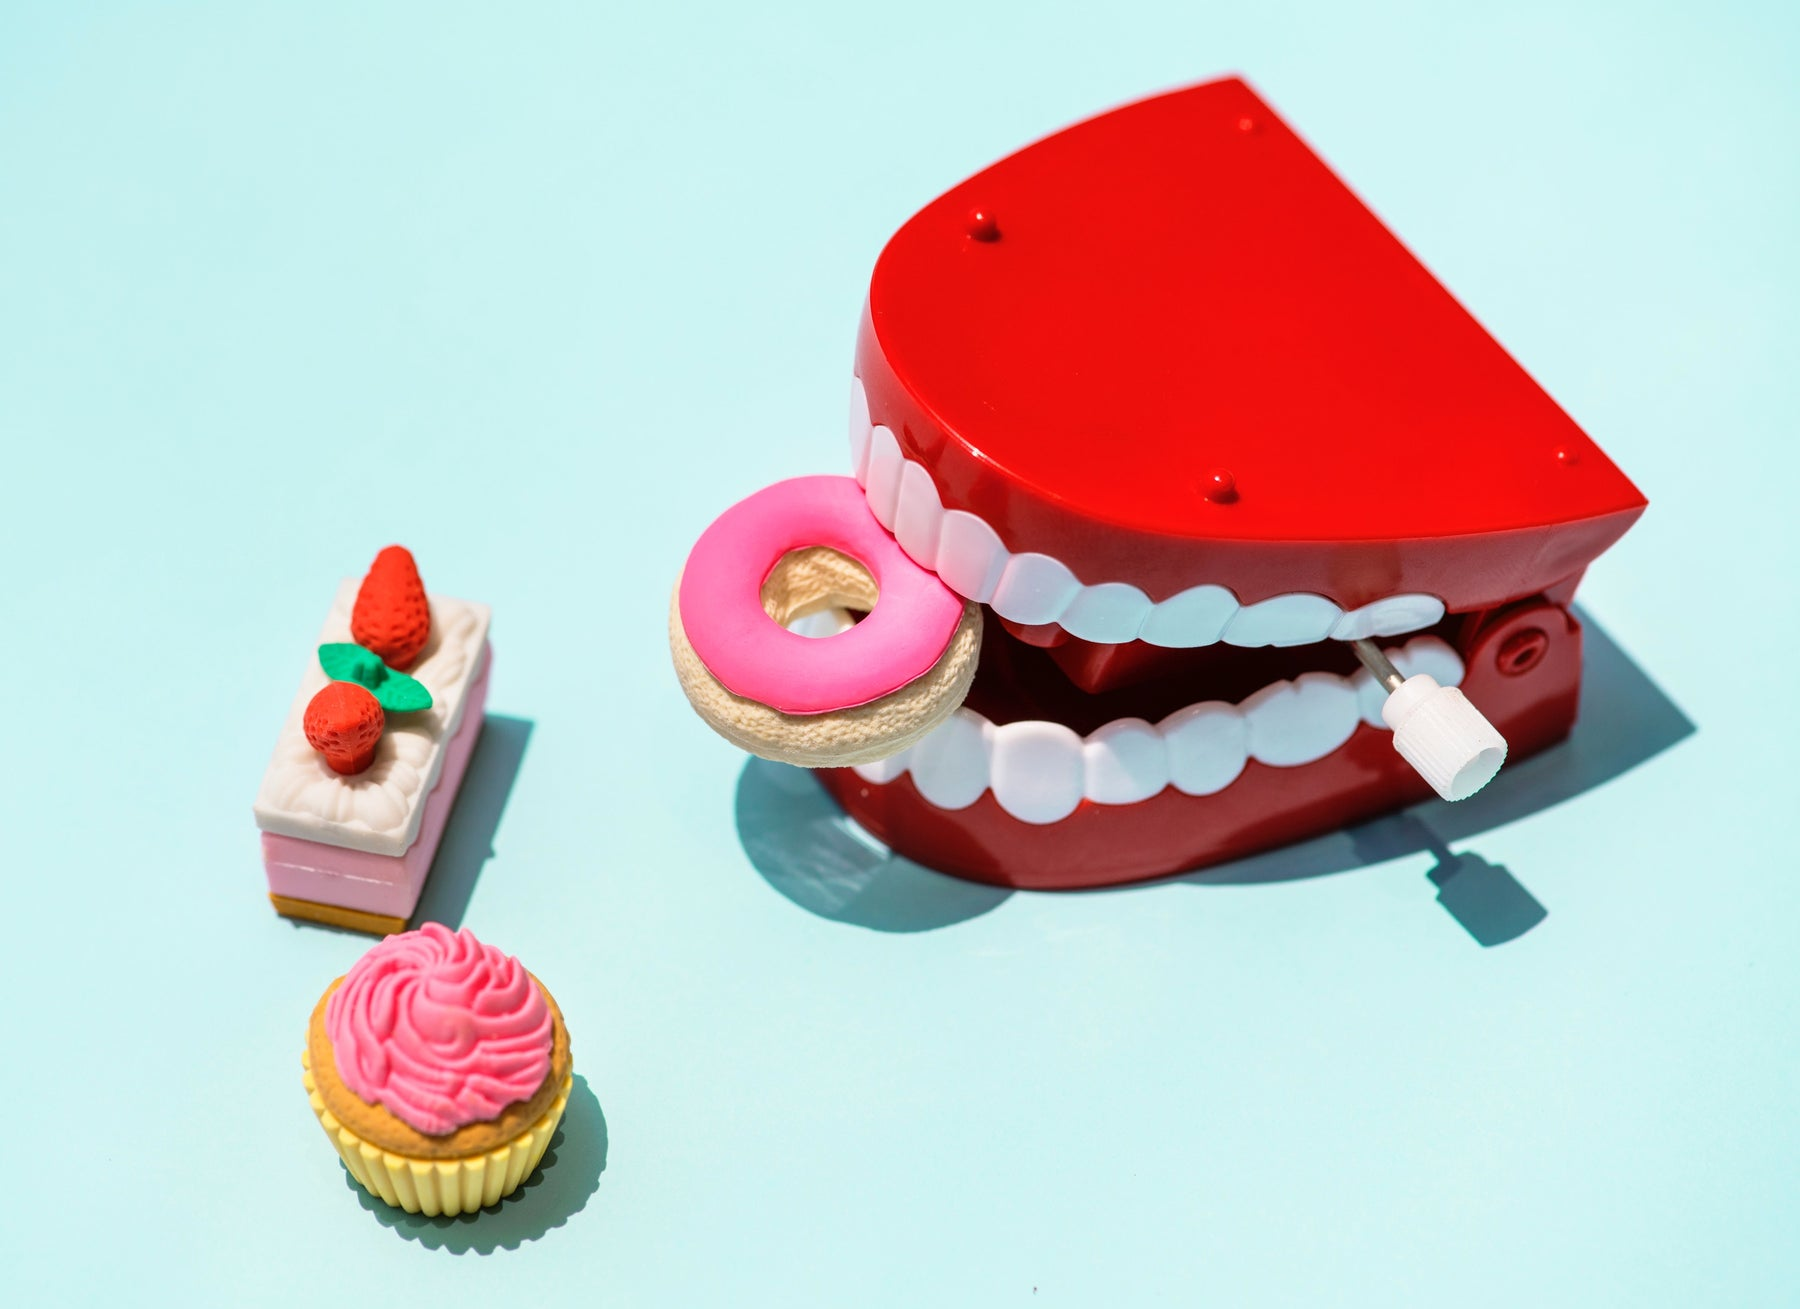 Uncovering the science behind snacking on junk food